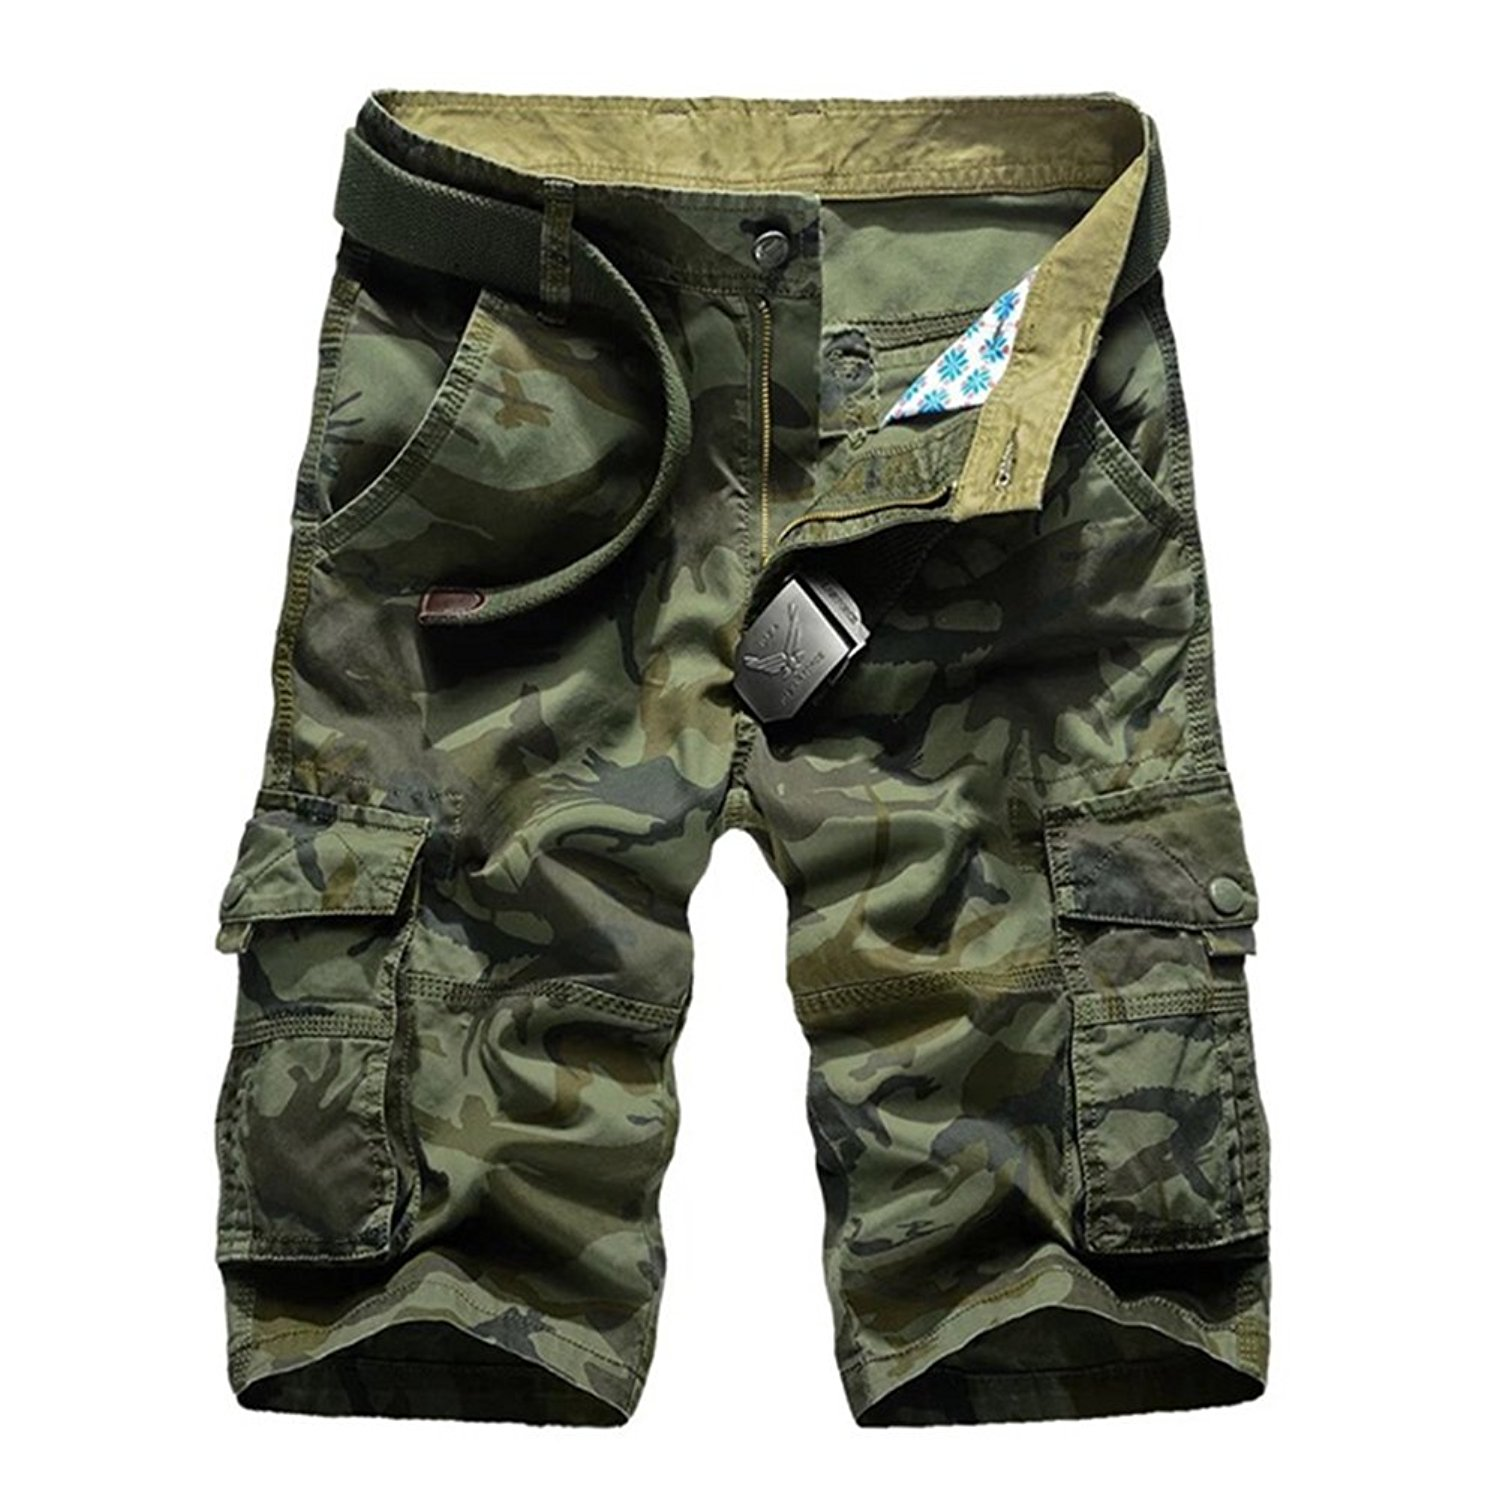 48020a3ff167 Get Quotations · Black Star New Summer Camouflage Shorts Men Casual Cotton Cargo  Short Pants Baggy Military camo Shorts